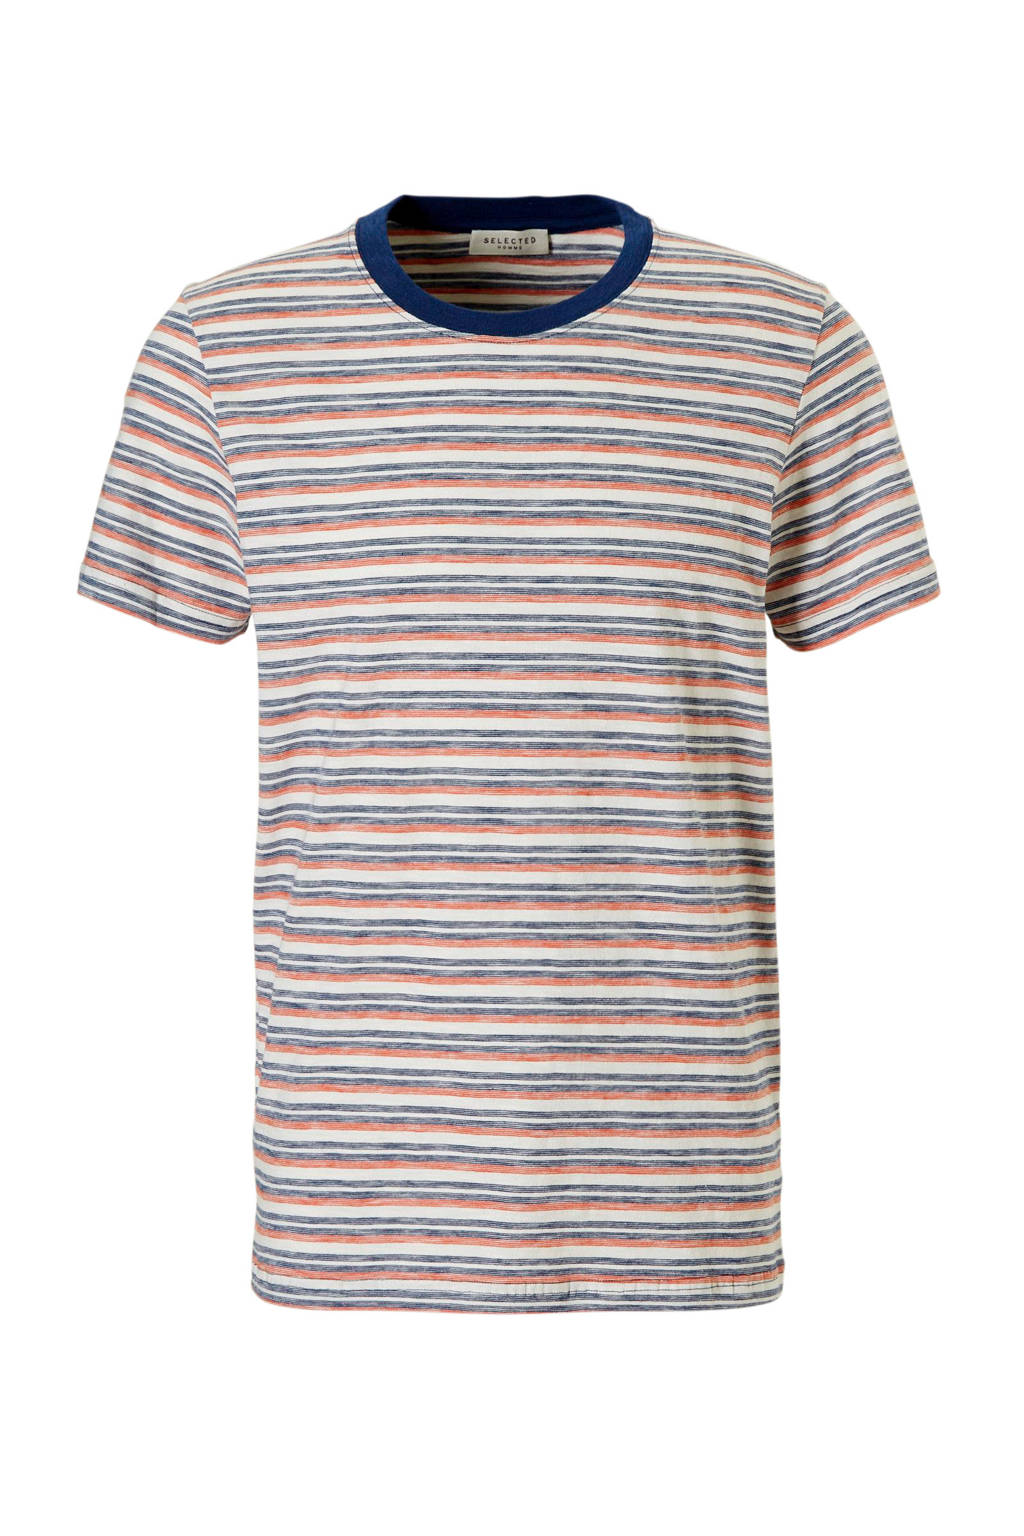 SELECTED HOMME T-shirt Kasper, Ecru/blauw